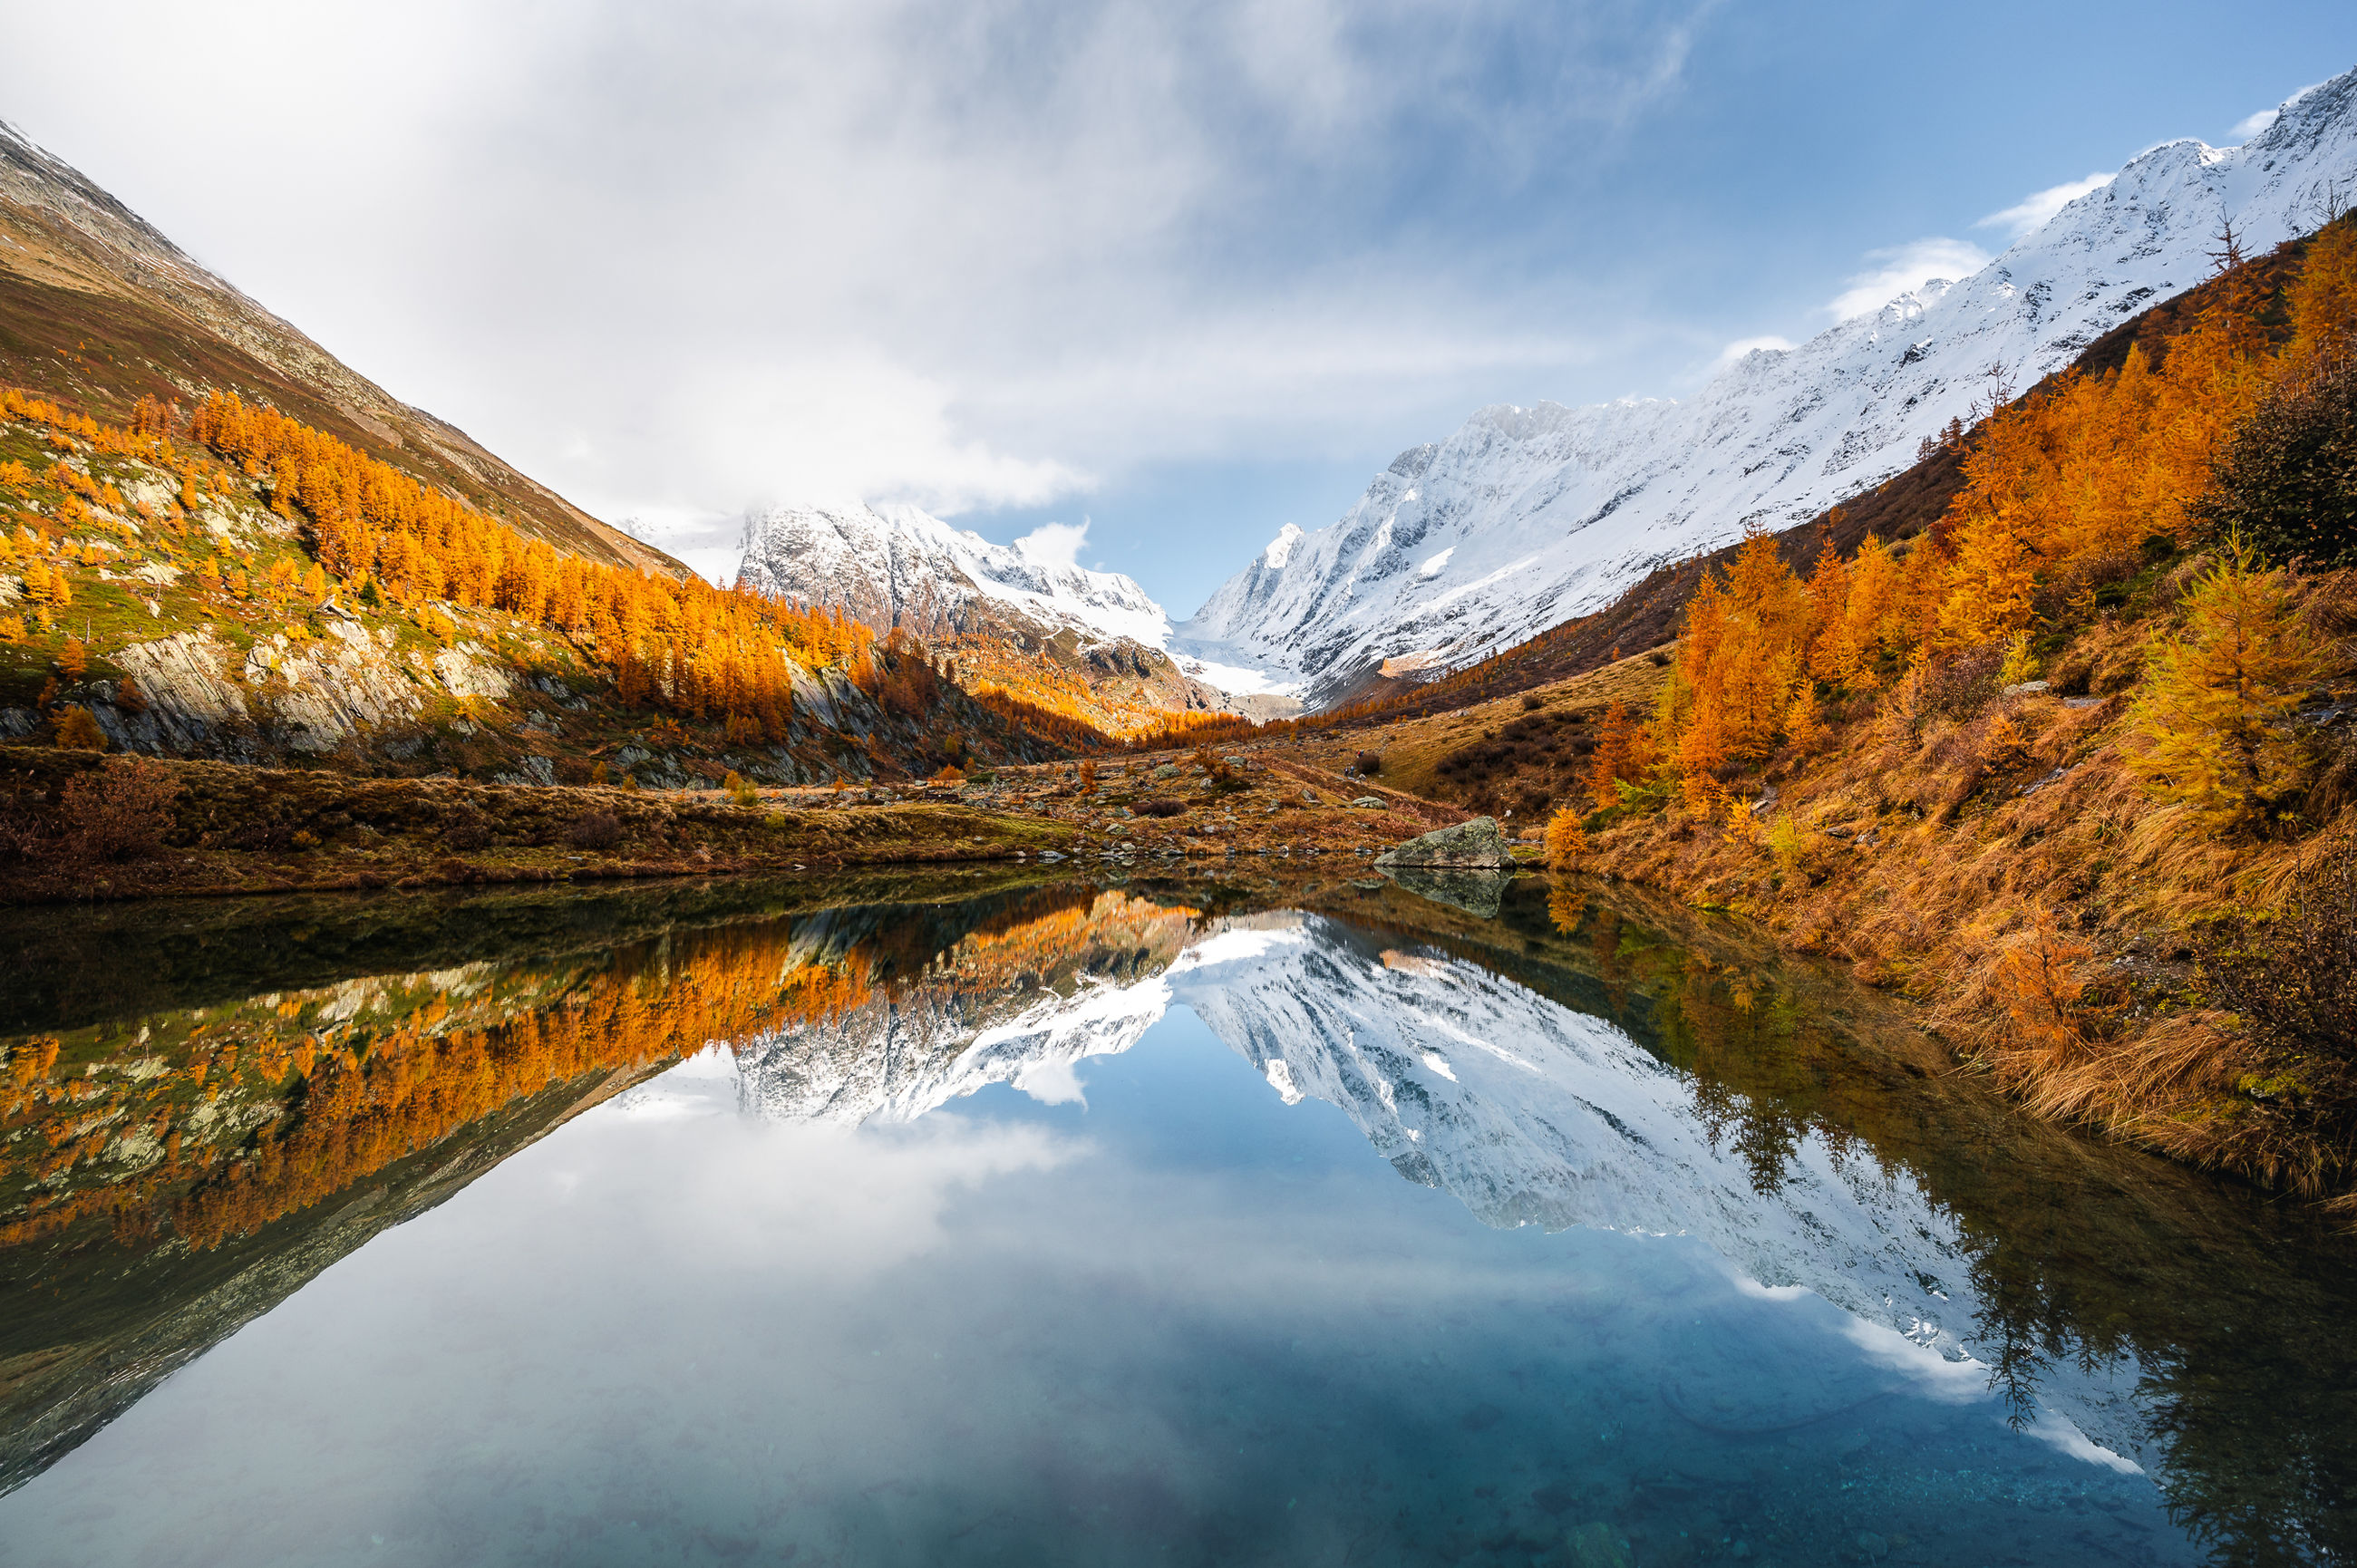 nature, water, mountain, scenics - nature, reflection, beauty in nature, environment, landscape, sky, lake, cloud, autumn, mountain range, wilderness, land, tree, forest, cold temperature, snow, tranquility, winter, tranquil scene, no people, plant, travel destinations, travel, snowcapped mountain, fog, outdoors, coniferous tree, non-urban scene, mountain peak, morning, multi colored, pinaceae, idyllic, pine woodland, pine tree, activity, tourism, leaf, vibrant color, ice, blue, day, woodland, rock, sun, valley, vacation, trip